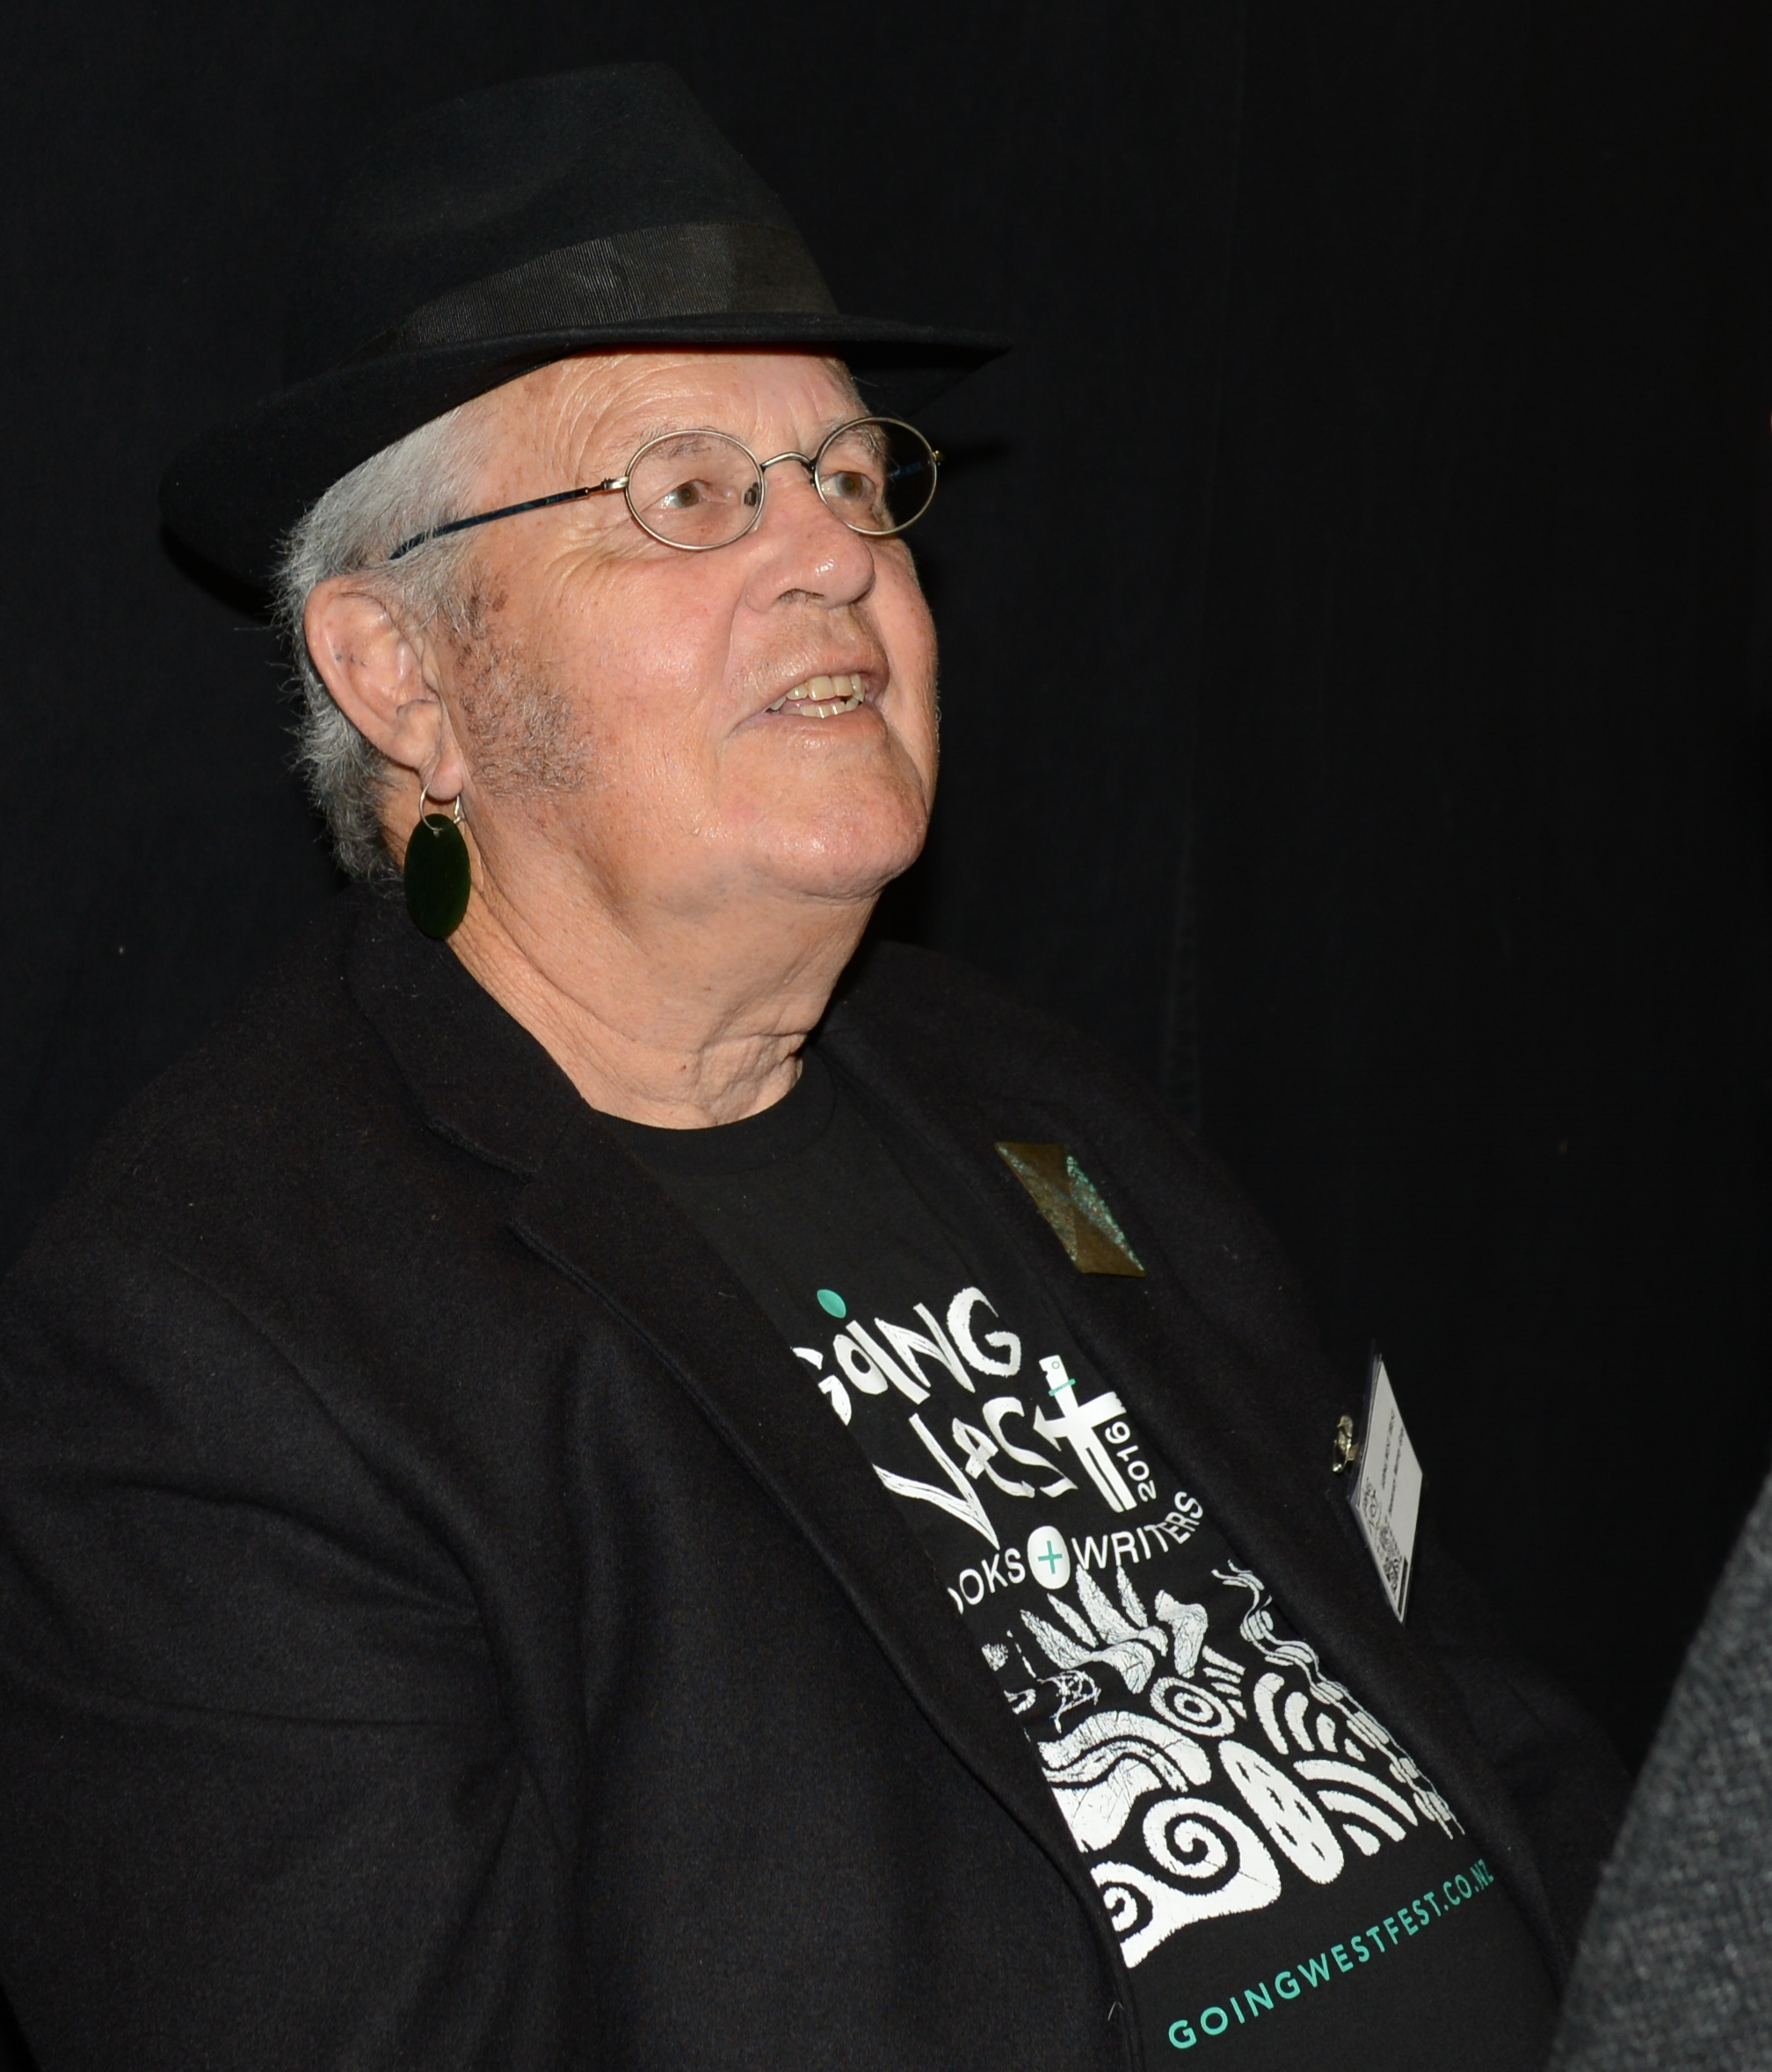 Going West founder Murray Gray